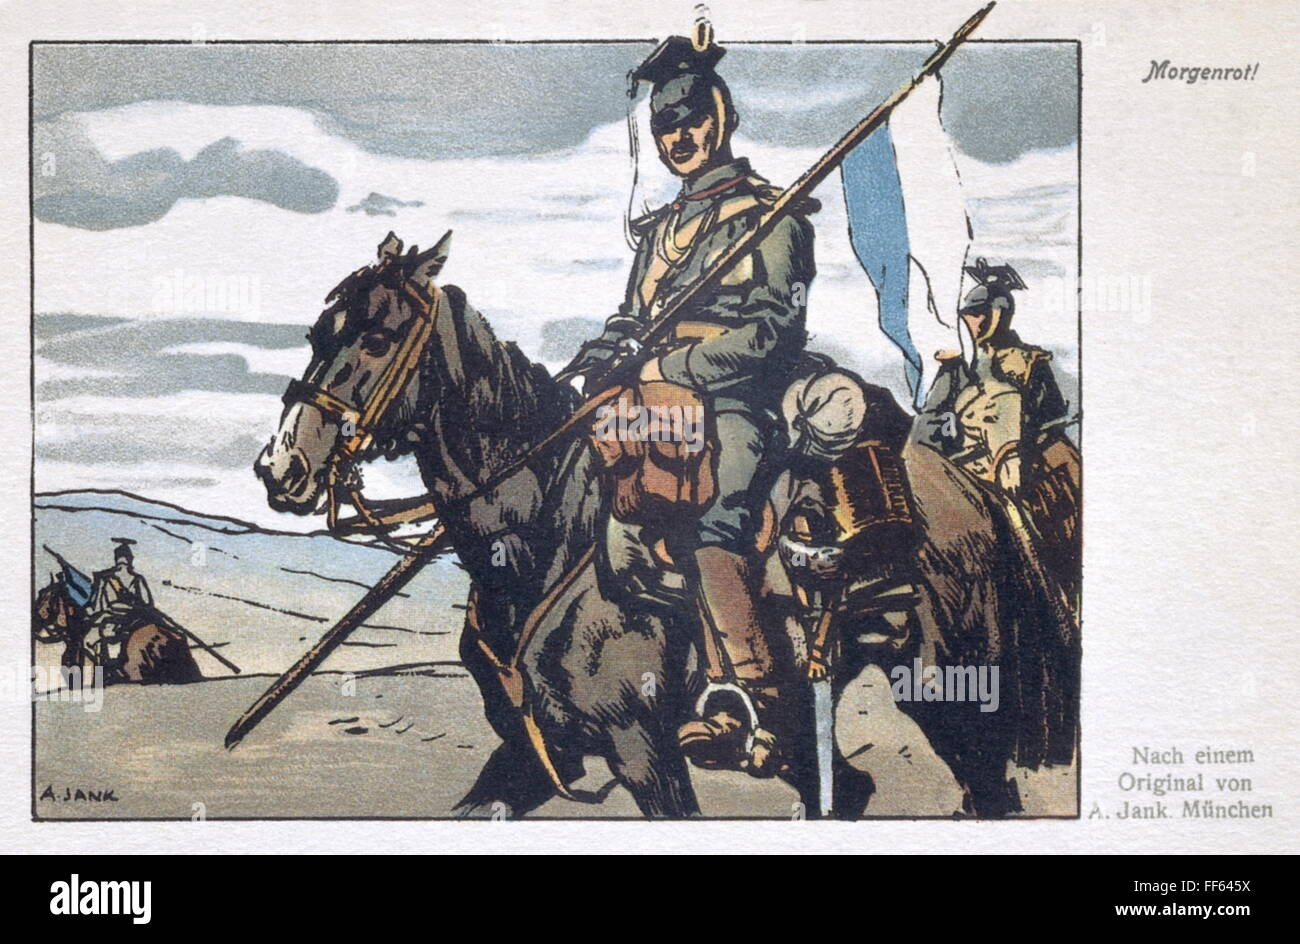 military, Germany, cavalry, Bavarian uhlan, 1914, coloured drawing 'Morgenrot' (Dawn) by Angelo Jank (1868 - Stock Image